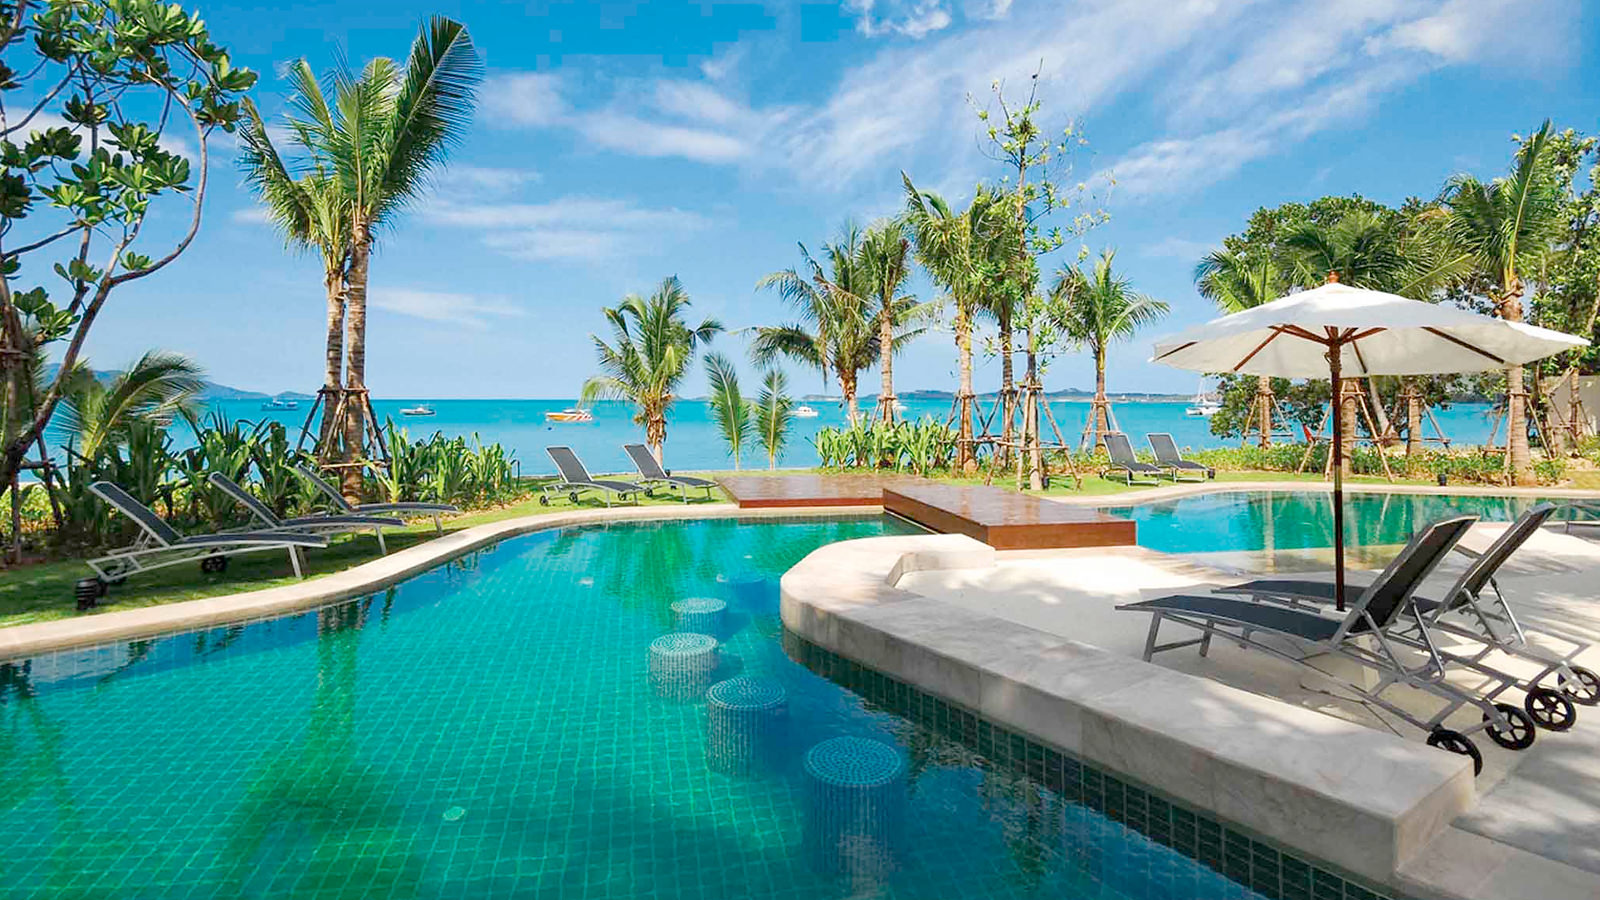 Bo Phut Beach Bo Phut & the Northeast, 10 Best Beach Resorts in Bophut - Most Popular Bophut Beachfront ...